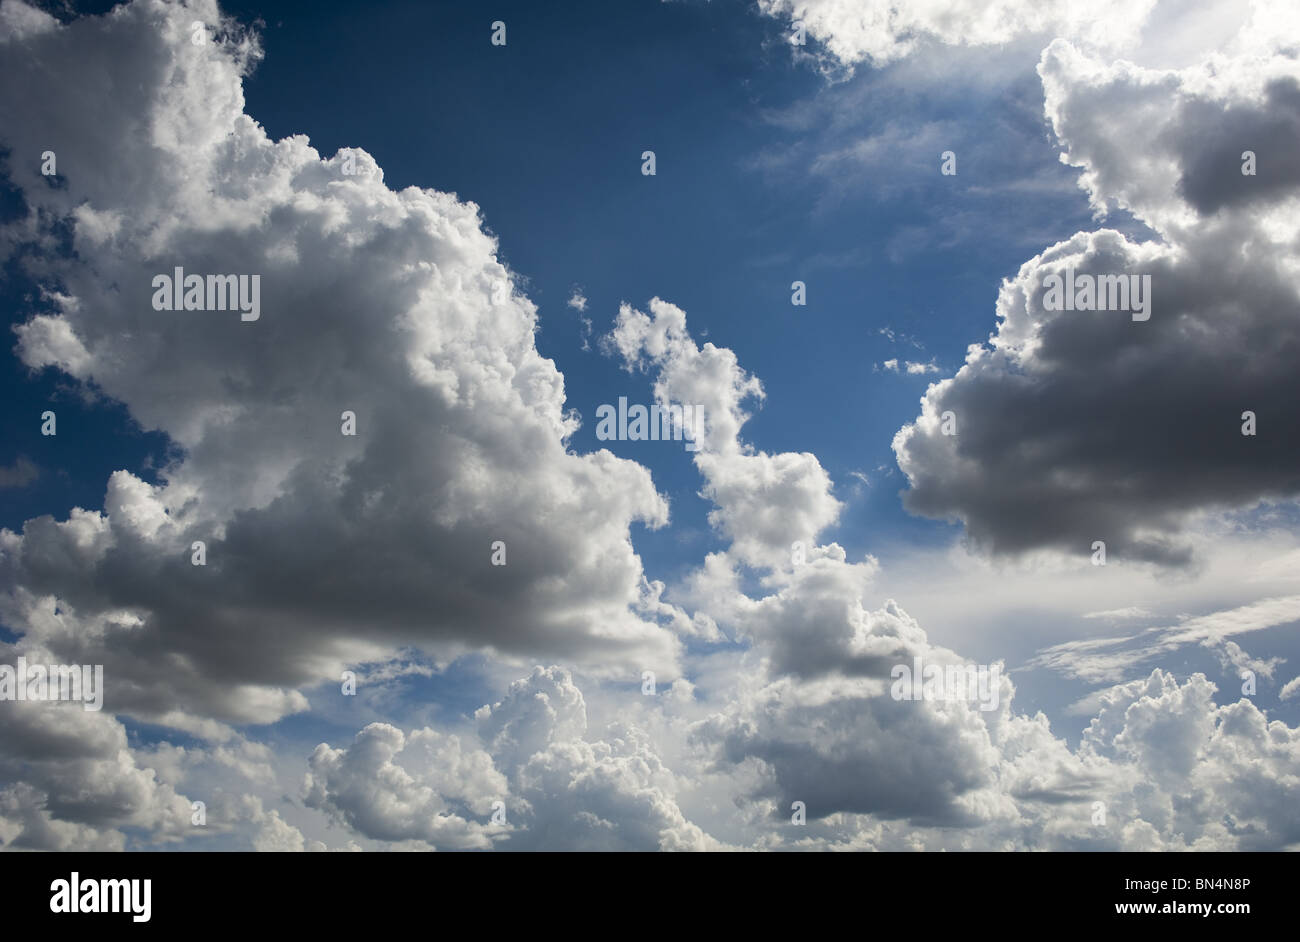 Blue Sky and Clouds - Stock Image